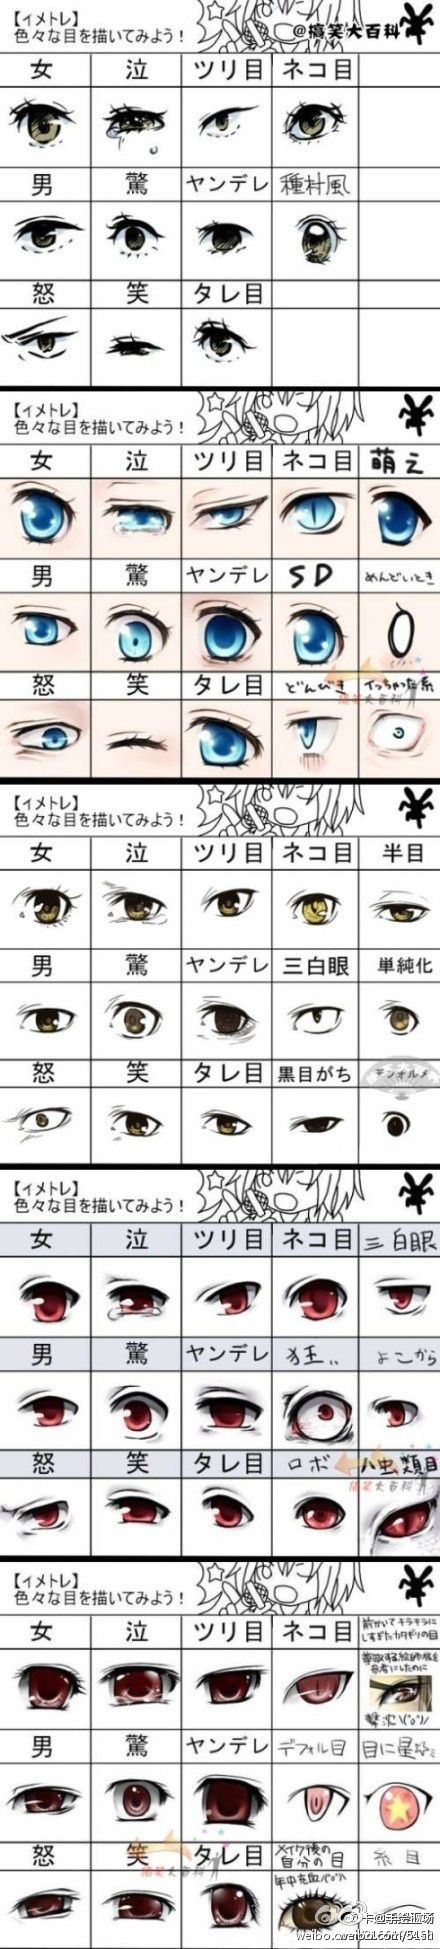 How To Draw Anime Eyes Interesting, Considering I've Never Really Been Able